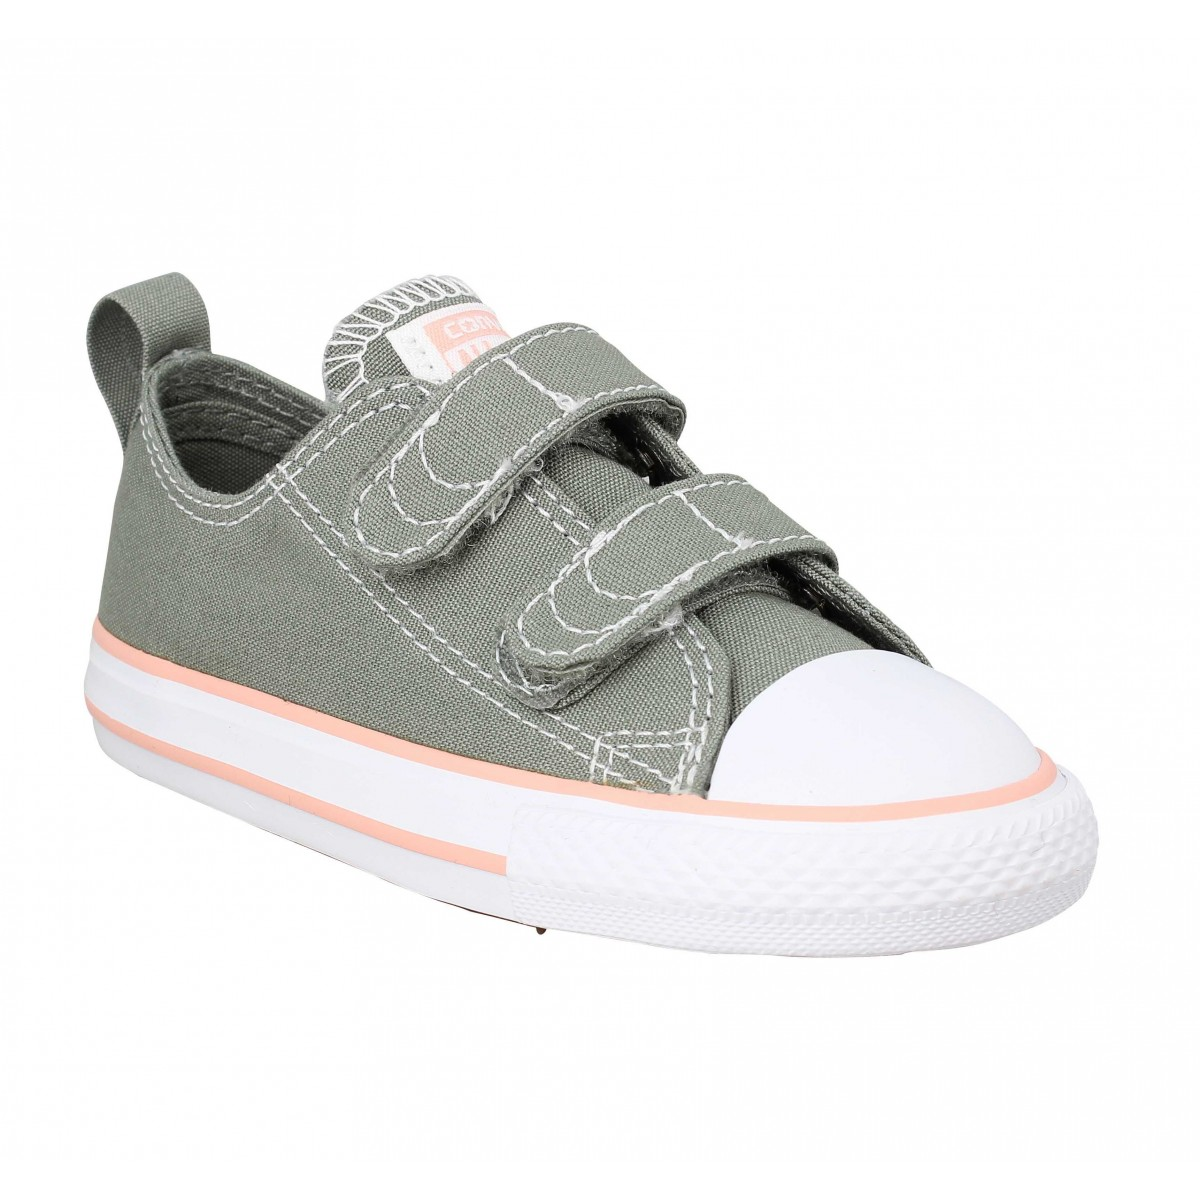 Baskets CONVERSE Chuck Taylor All Star 2V toile Enfant Gris